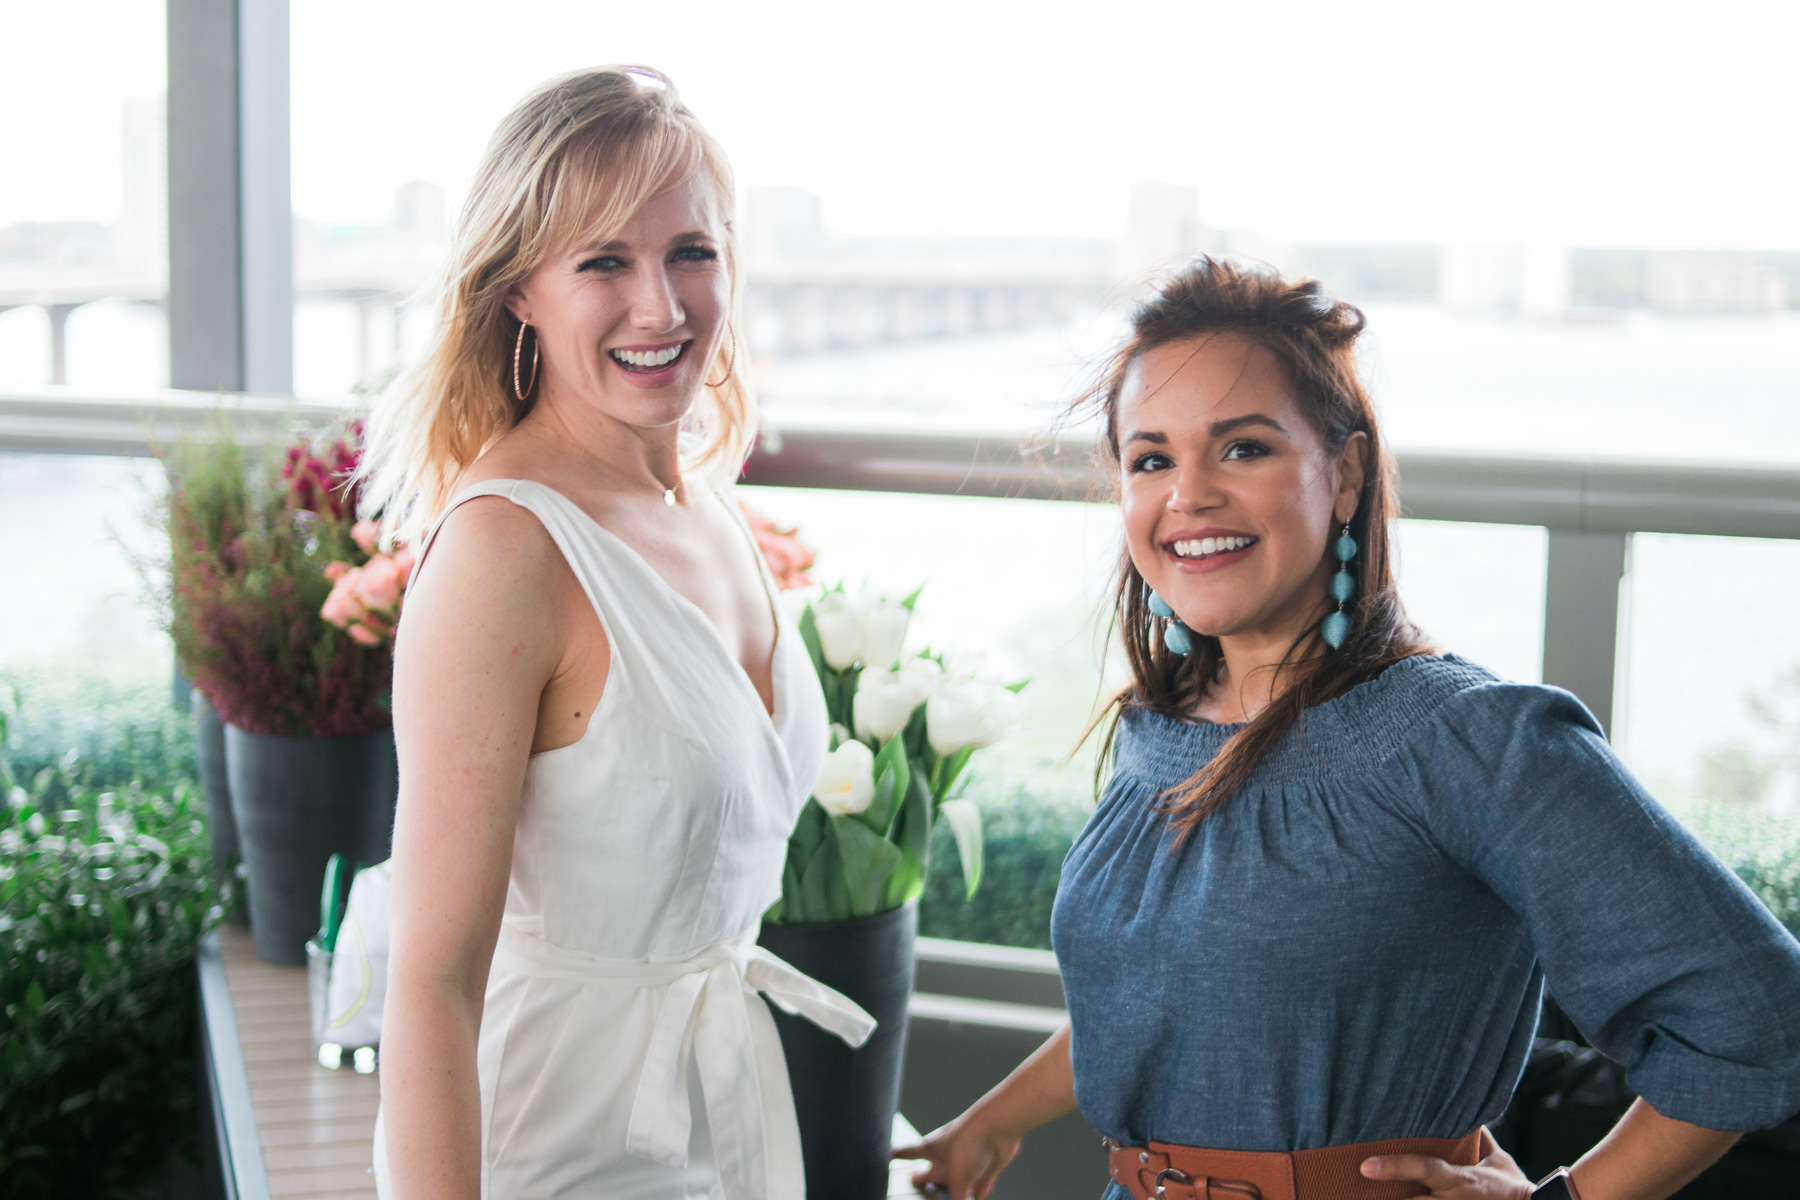 Nicole from Alice's Table in Jacksonville with La La Lisette blogger from Jacksonvllle